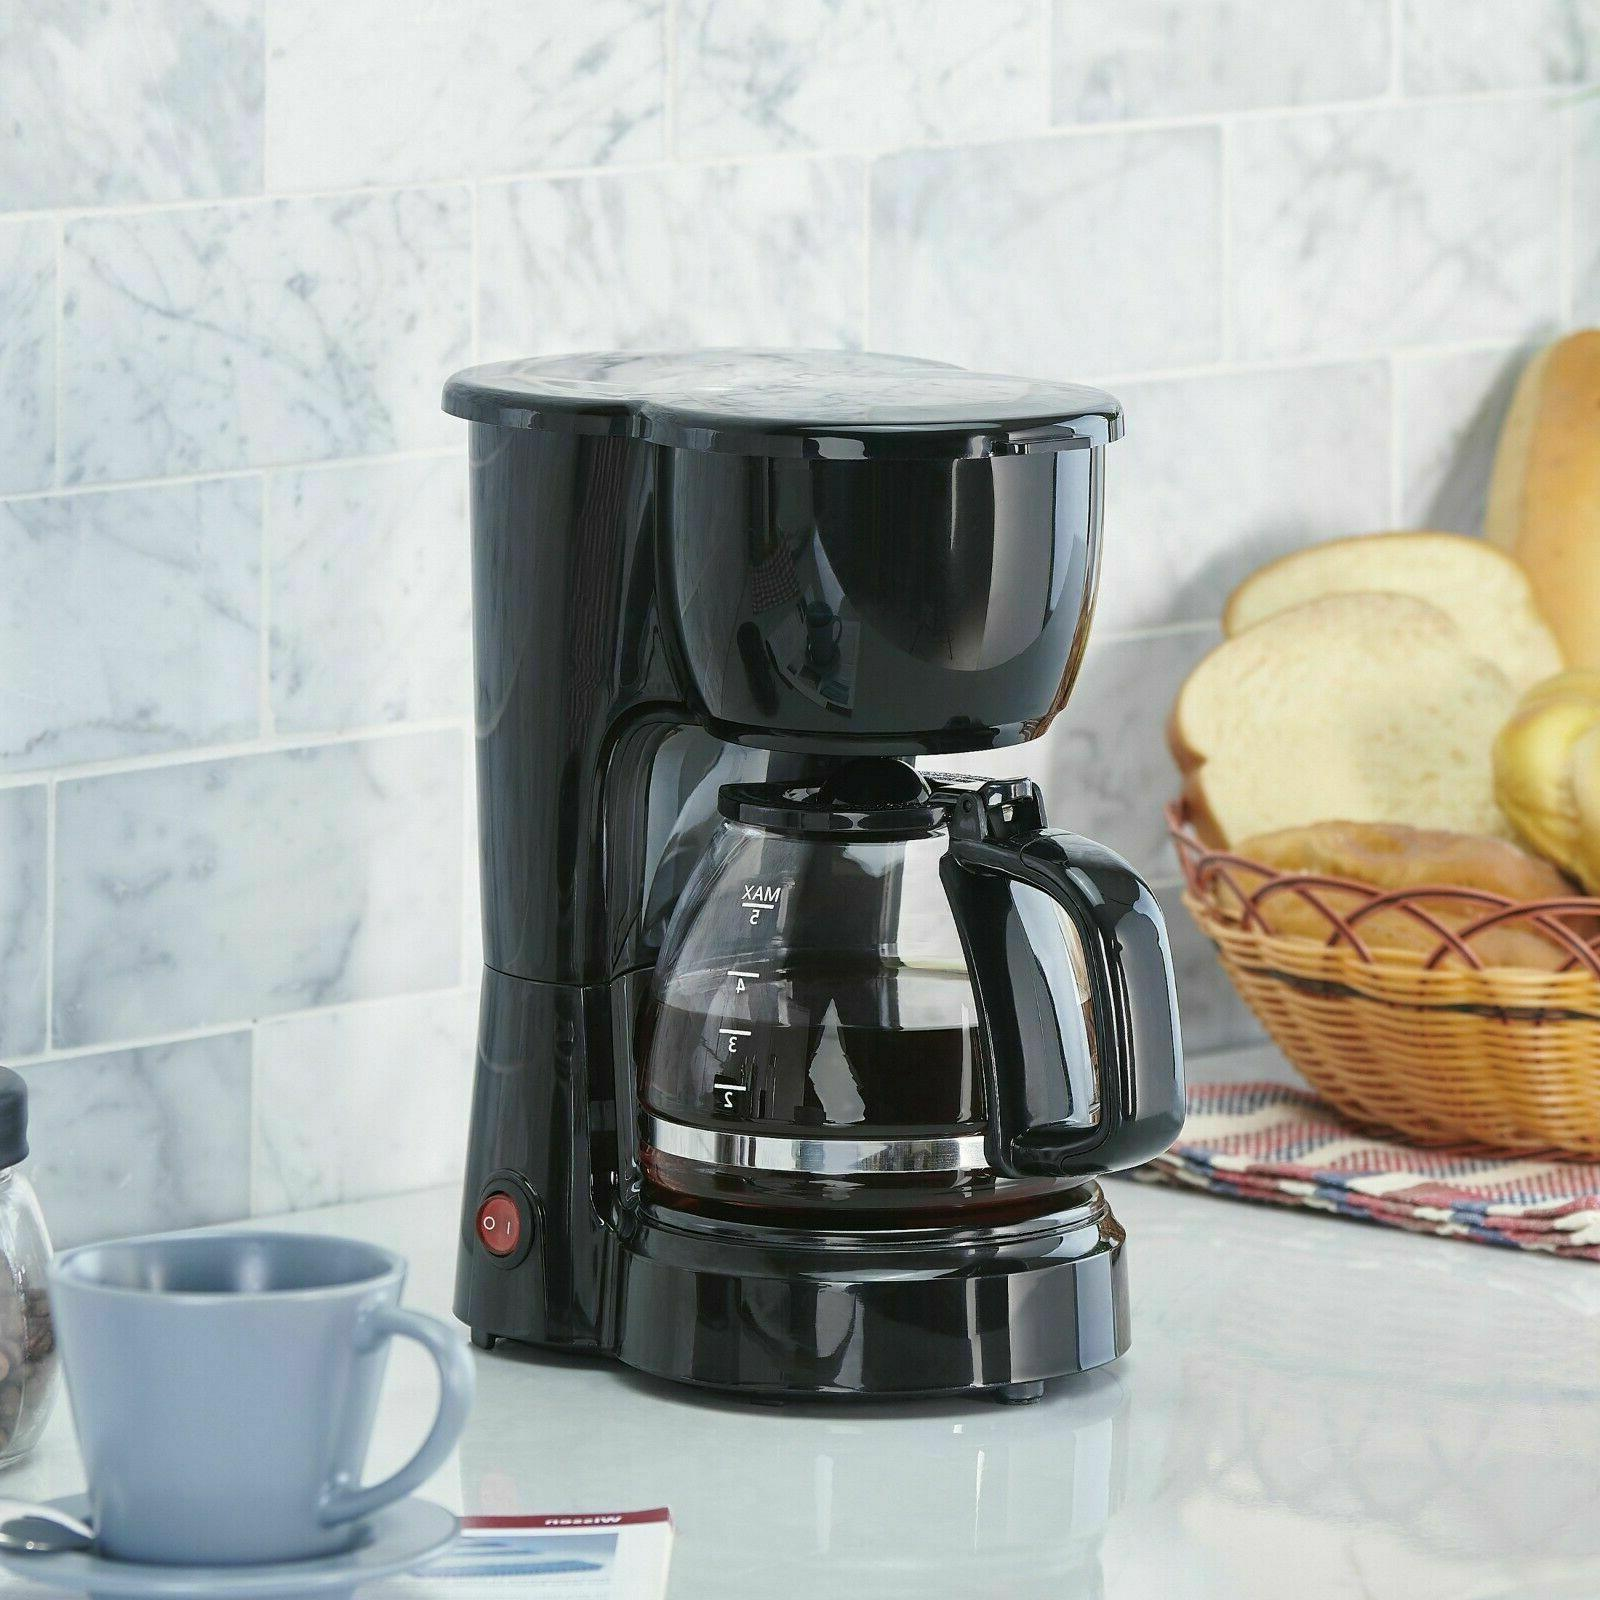 5 Cup Coffee Brew Pot Kitchen Appliance Electric Filter Home Black